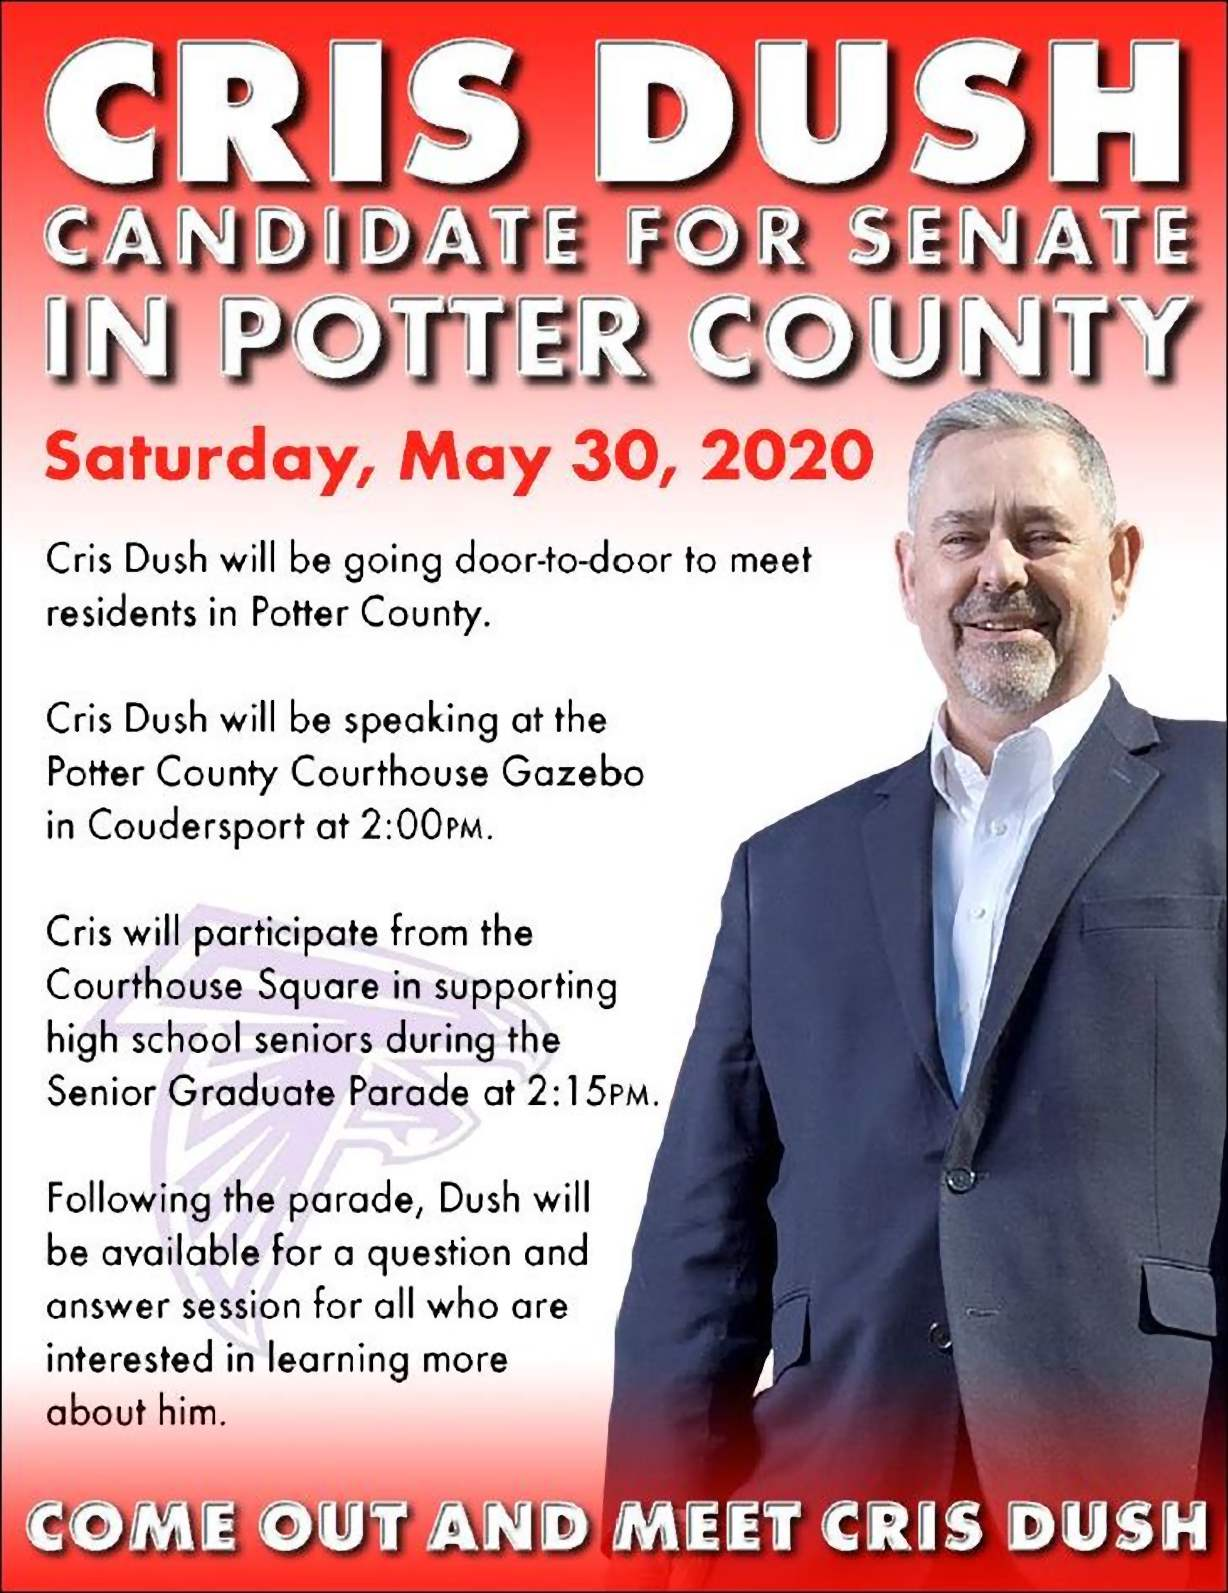 Meet Cris Dush Saturday in Potter County